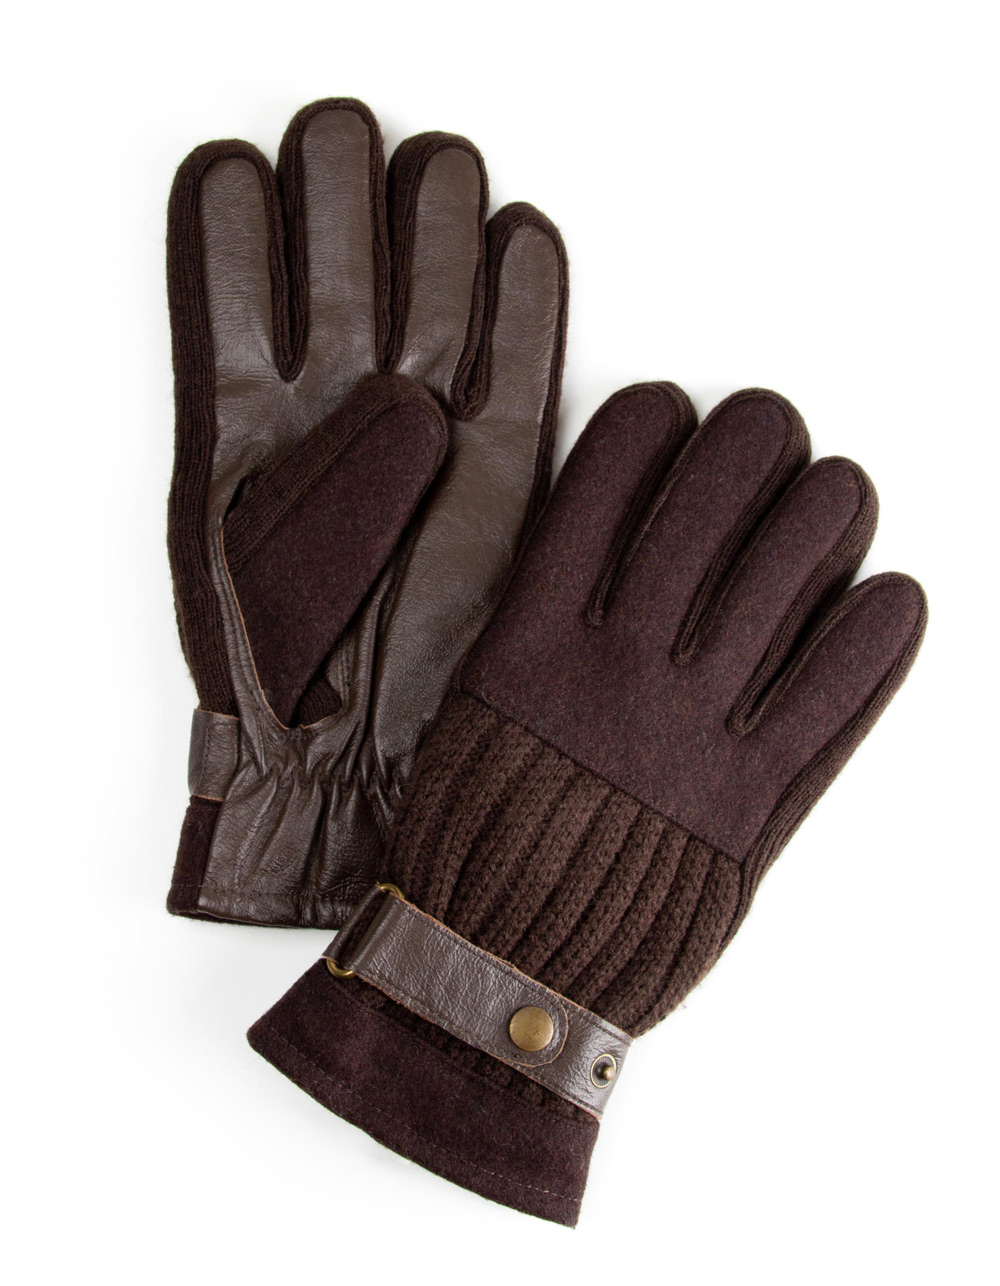 Brown gloves three textures